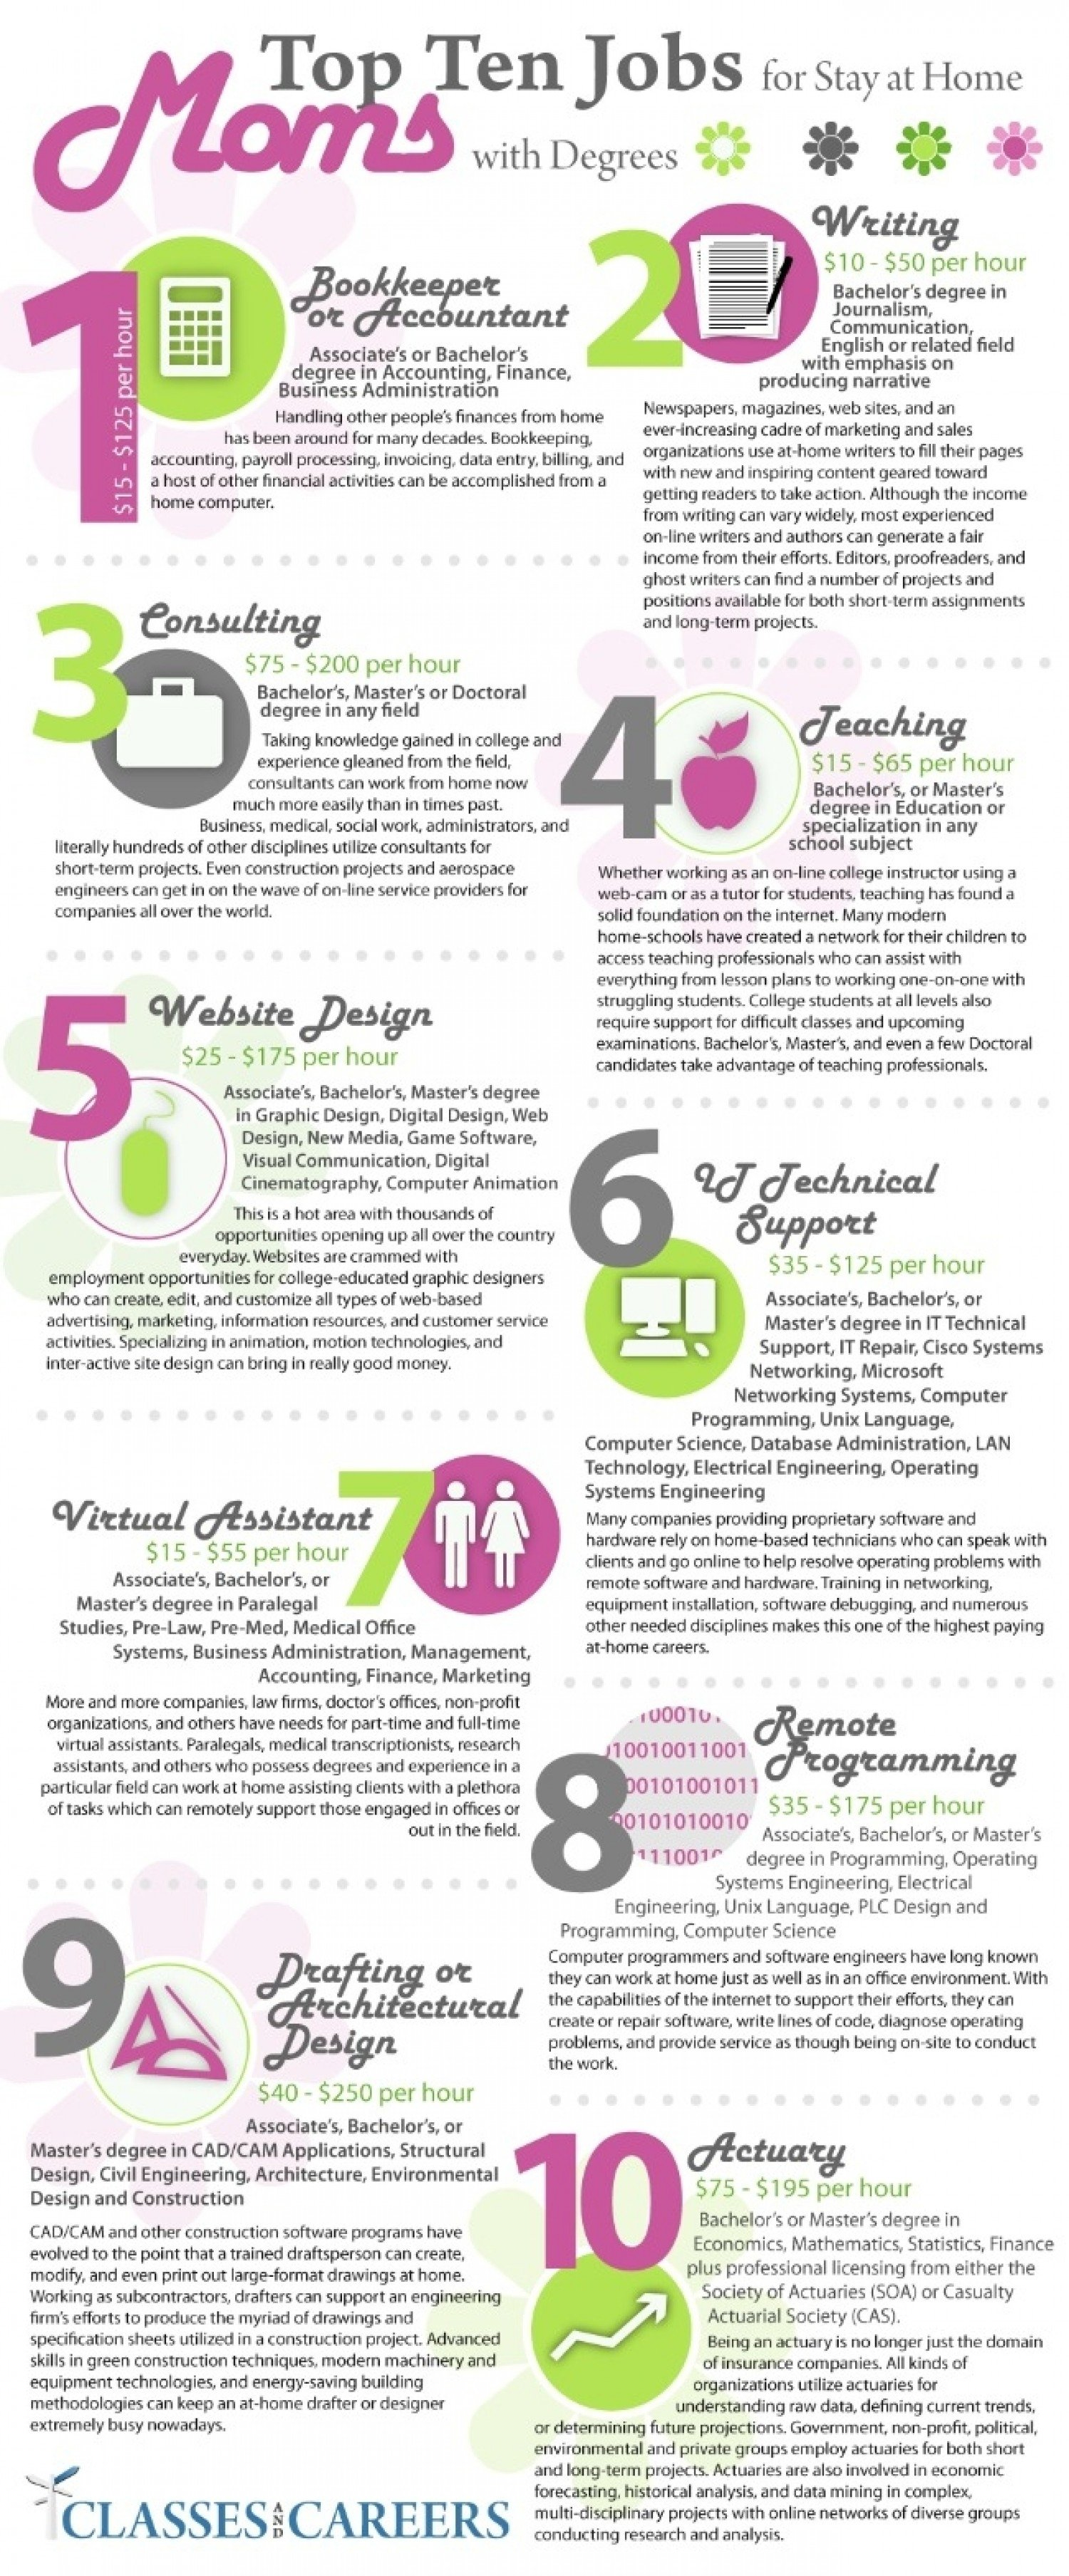 10 Fashionable Stay At Home Mom Jobs Ideas top 10 jobs for sahms with degrees visual ly 2021